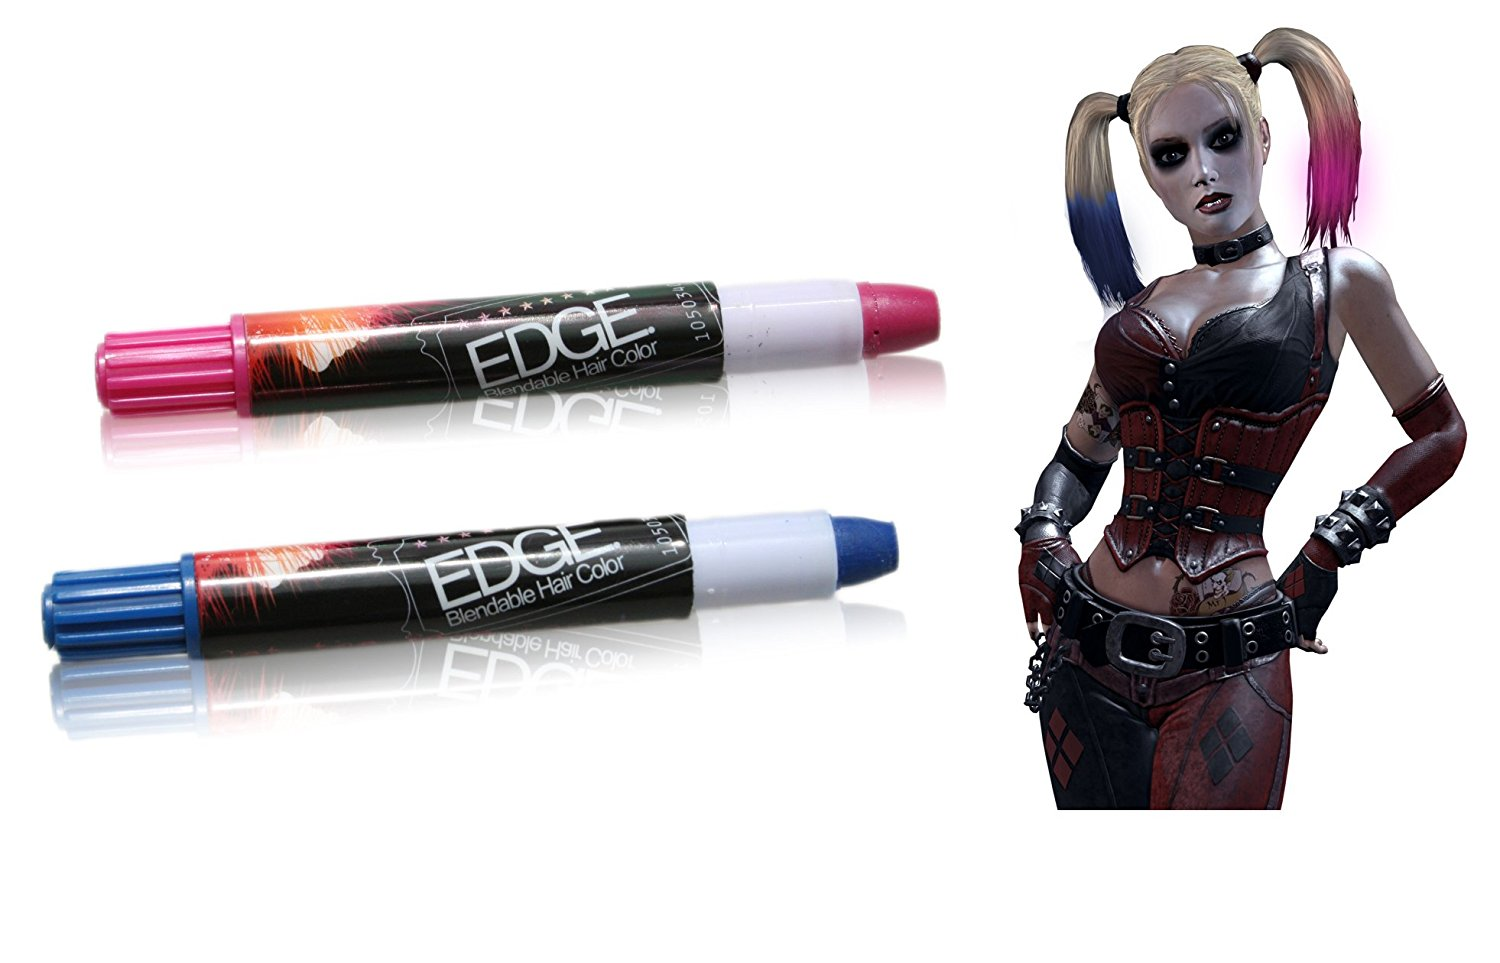 Harley Blue And Pink Hair Chalk Joker Style Edge Stix Temporary